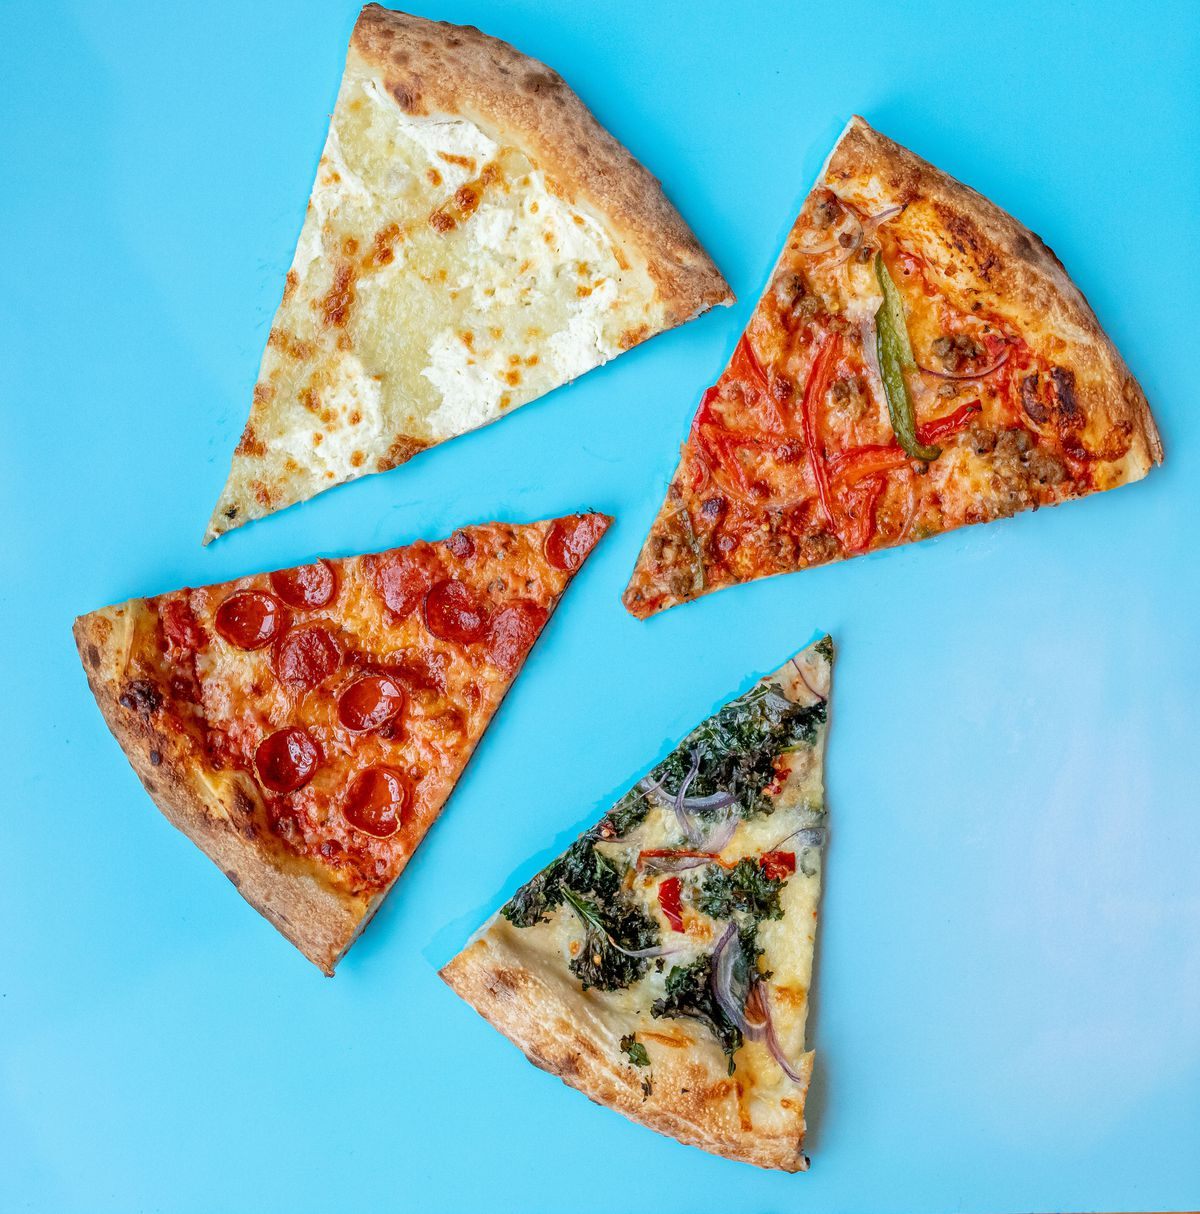 Four slices from Slice Joint, ranging from a white pizza to vegetable specials and pepperoni